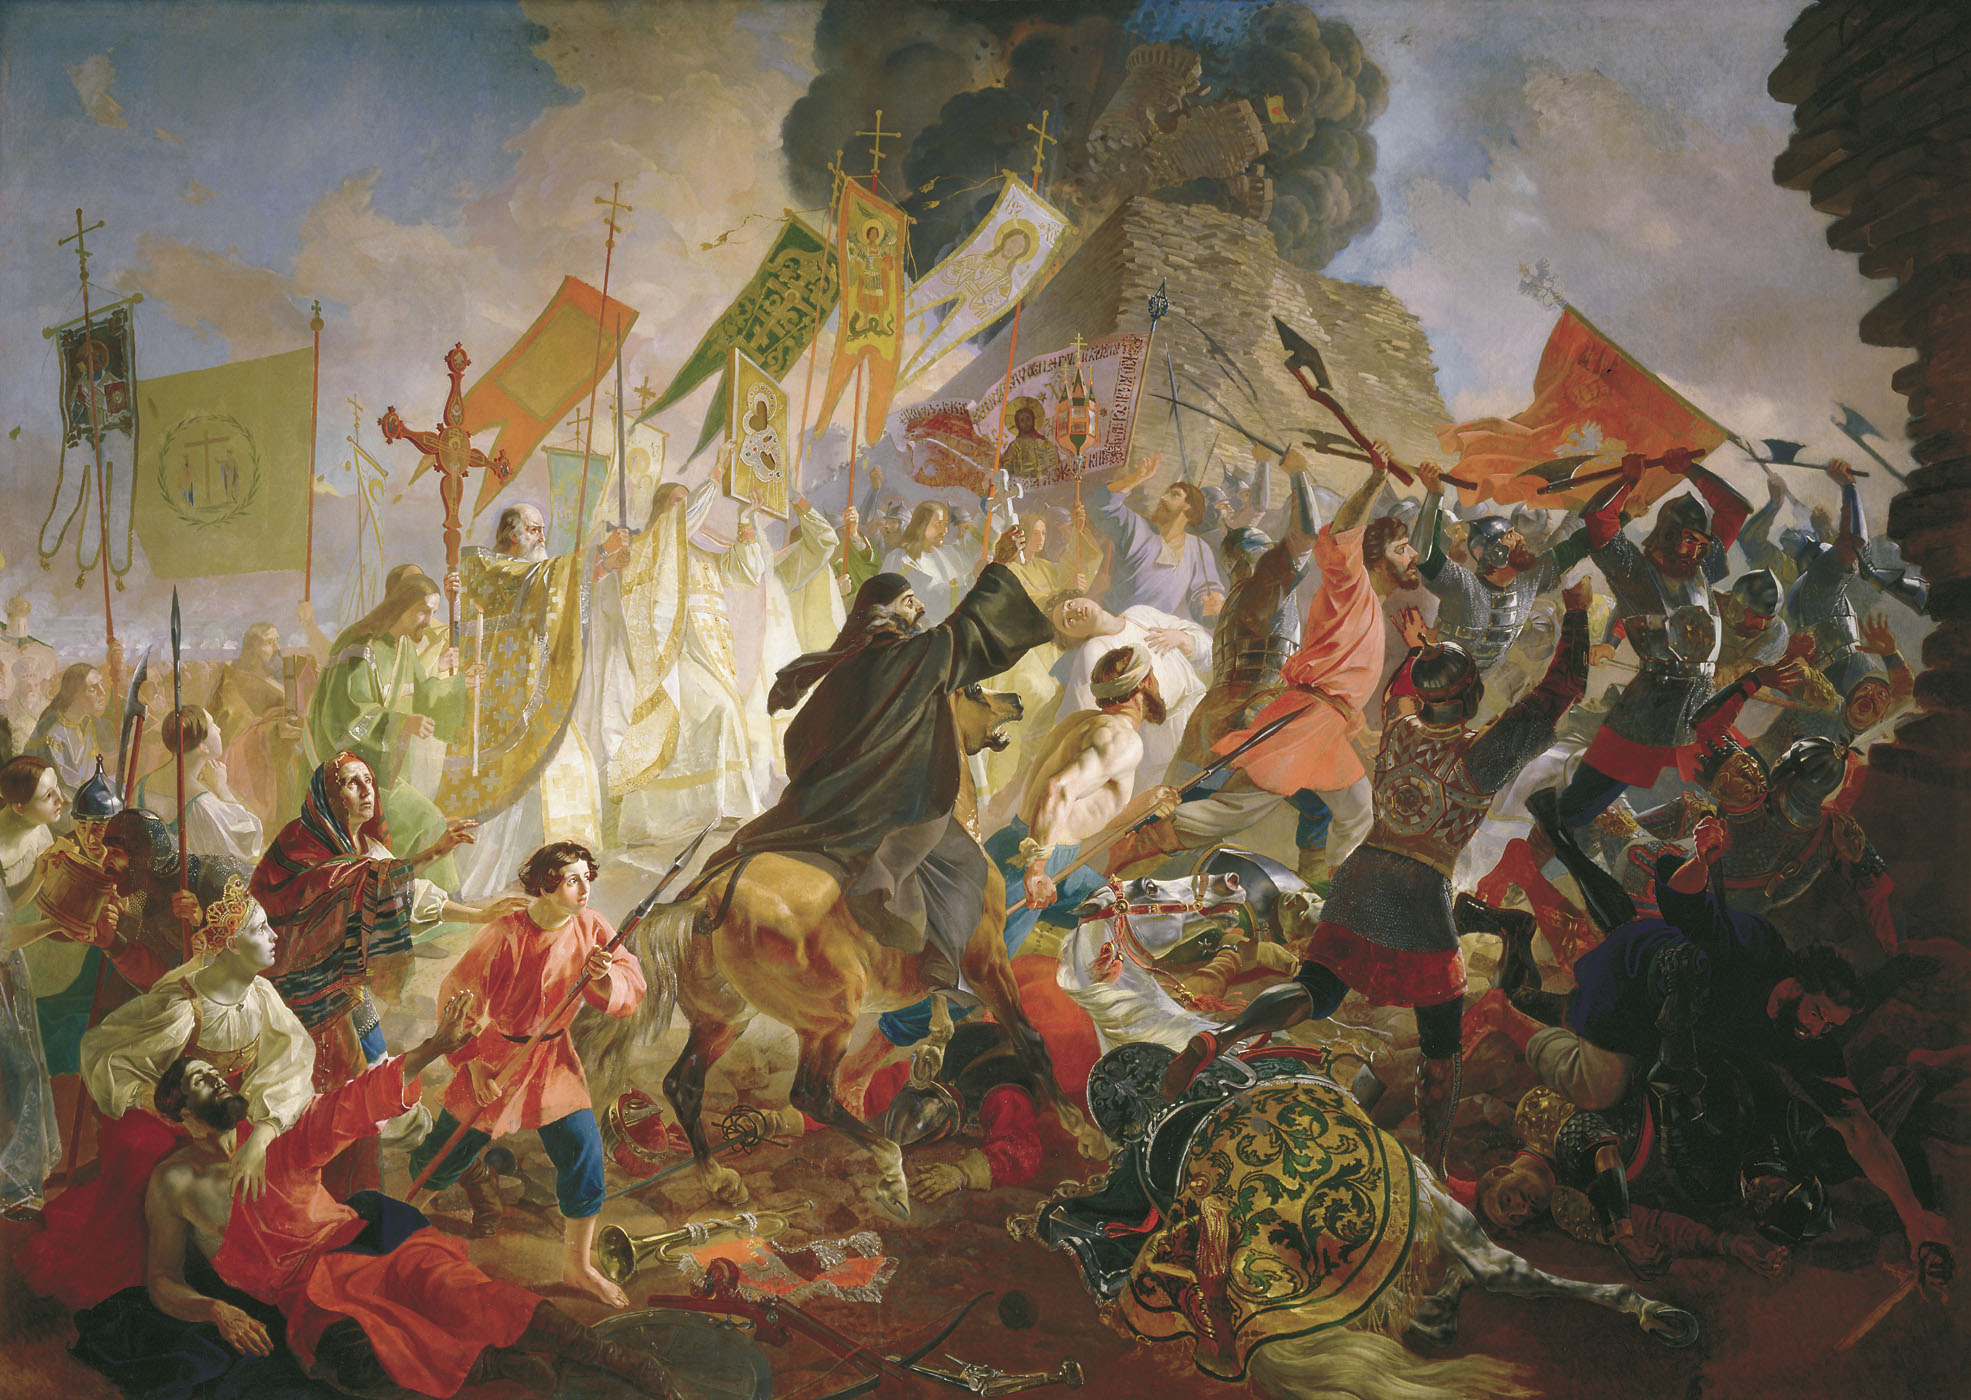 http://uploads4.wikipaintings.org/images/karl-bryullov/siege-of-pskov-by-polish-king-stefan-batory-in-1581-1843.jpg